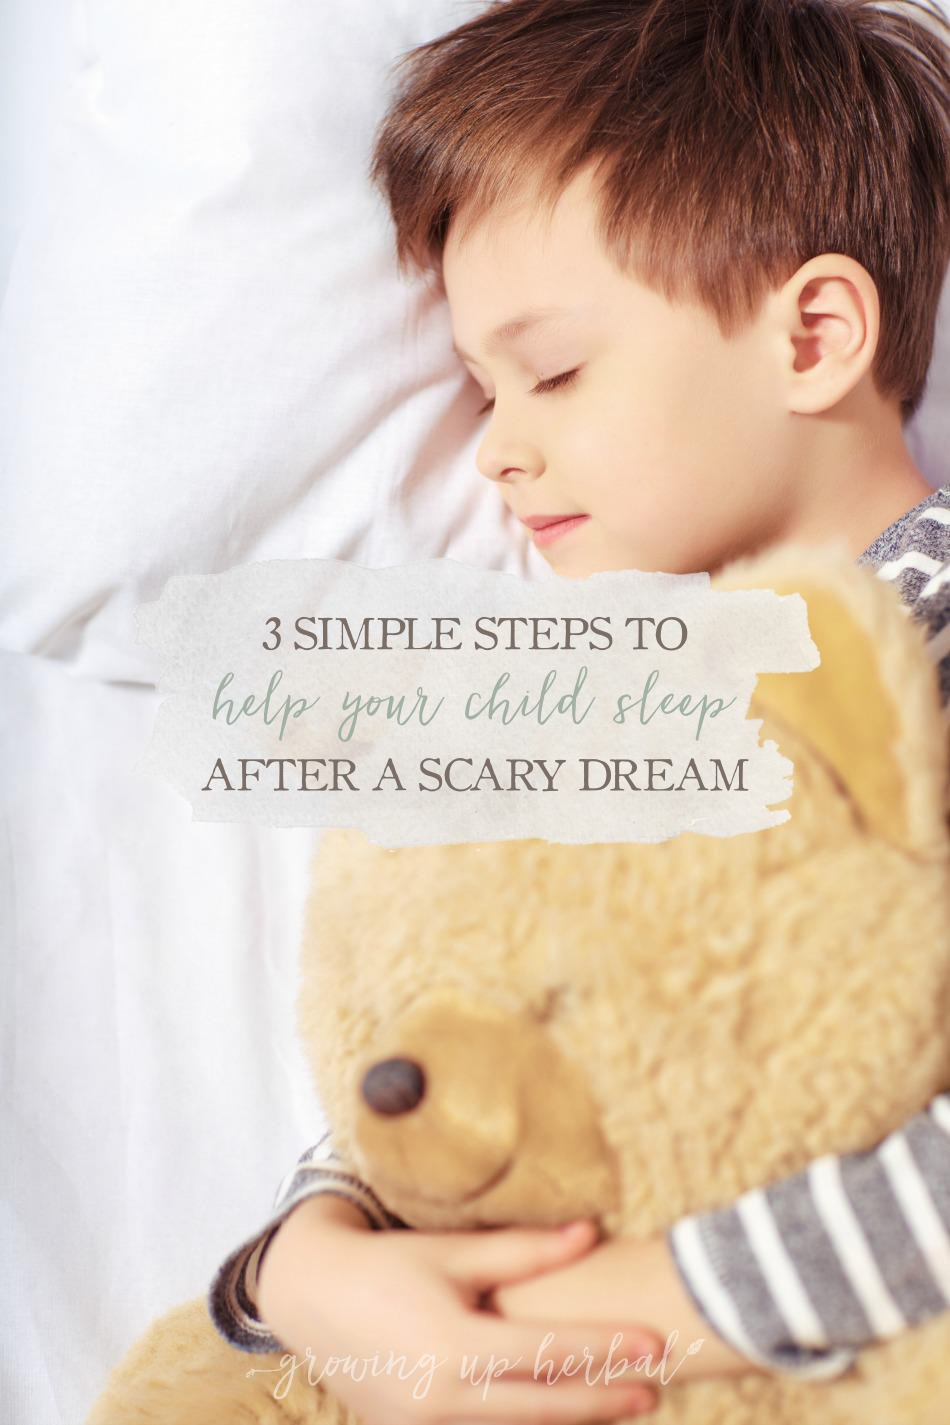 3 Simple Steps To Help Your Child Sleep After A Scary Dream | Growing Up Herbal | Childhood fears are normal. Here's how to support your child emotionally and help them through their fears at the same time.